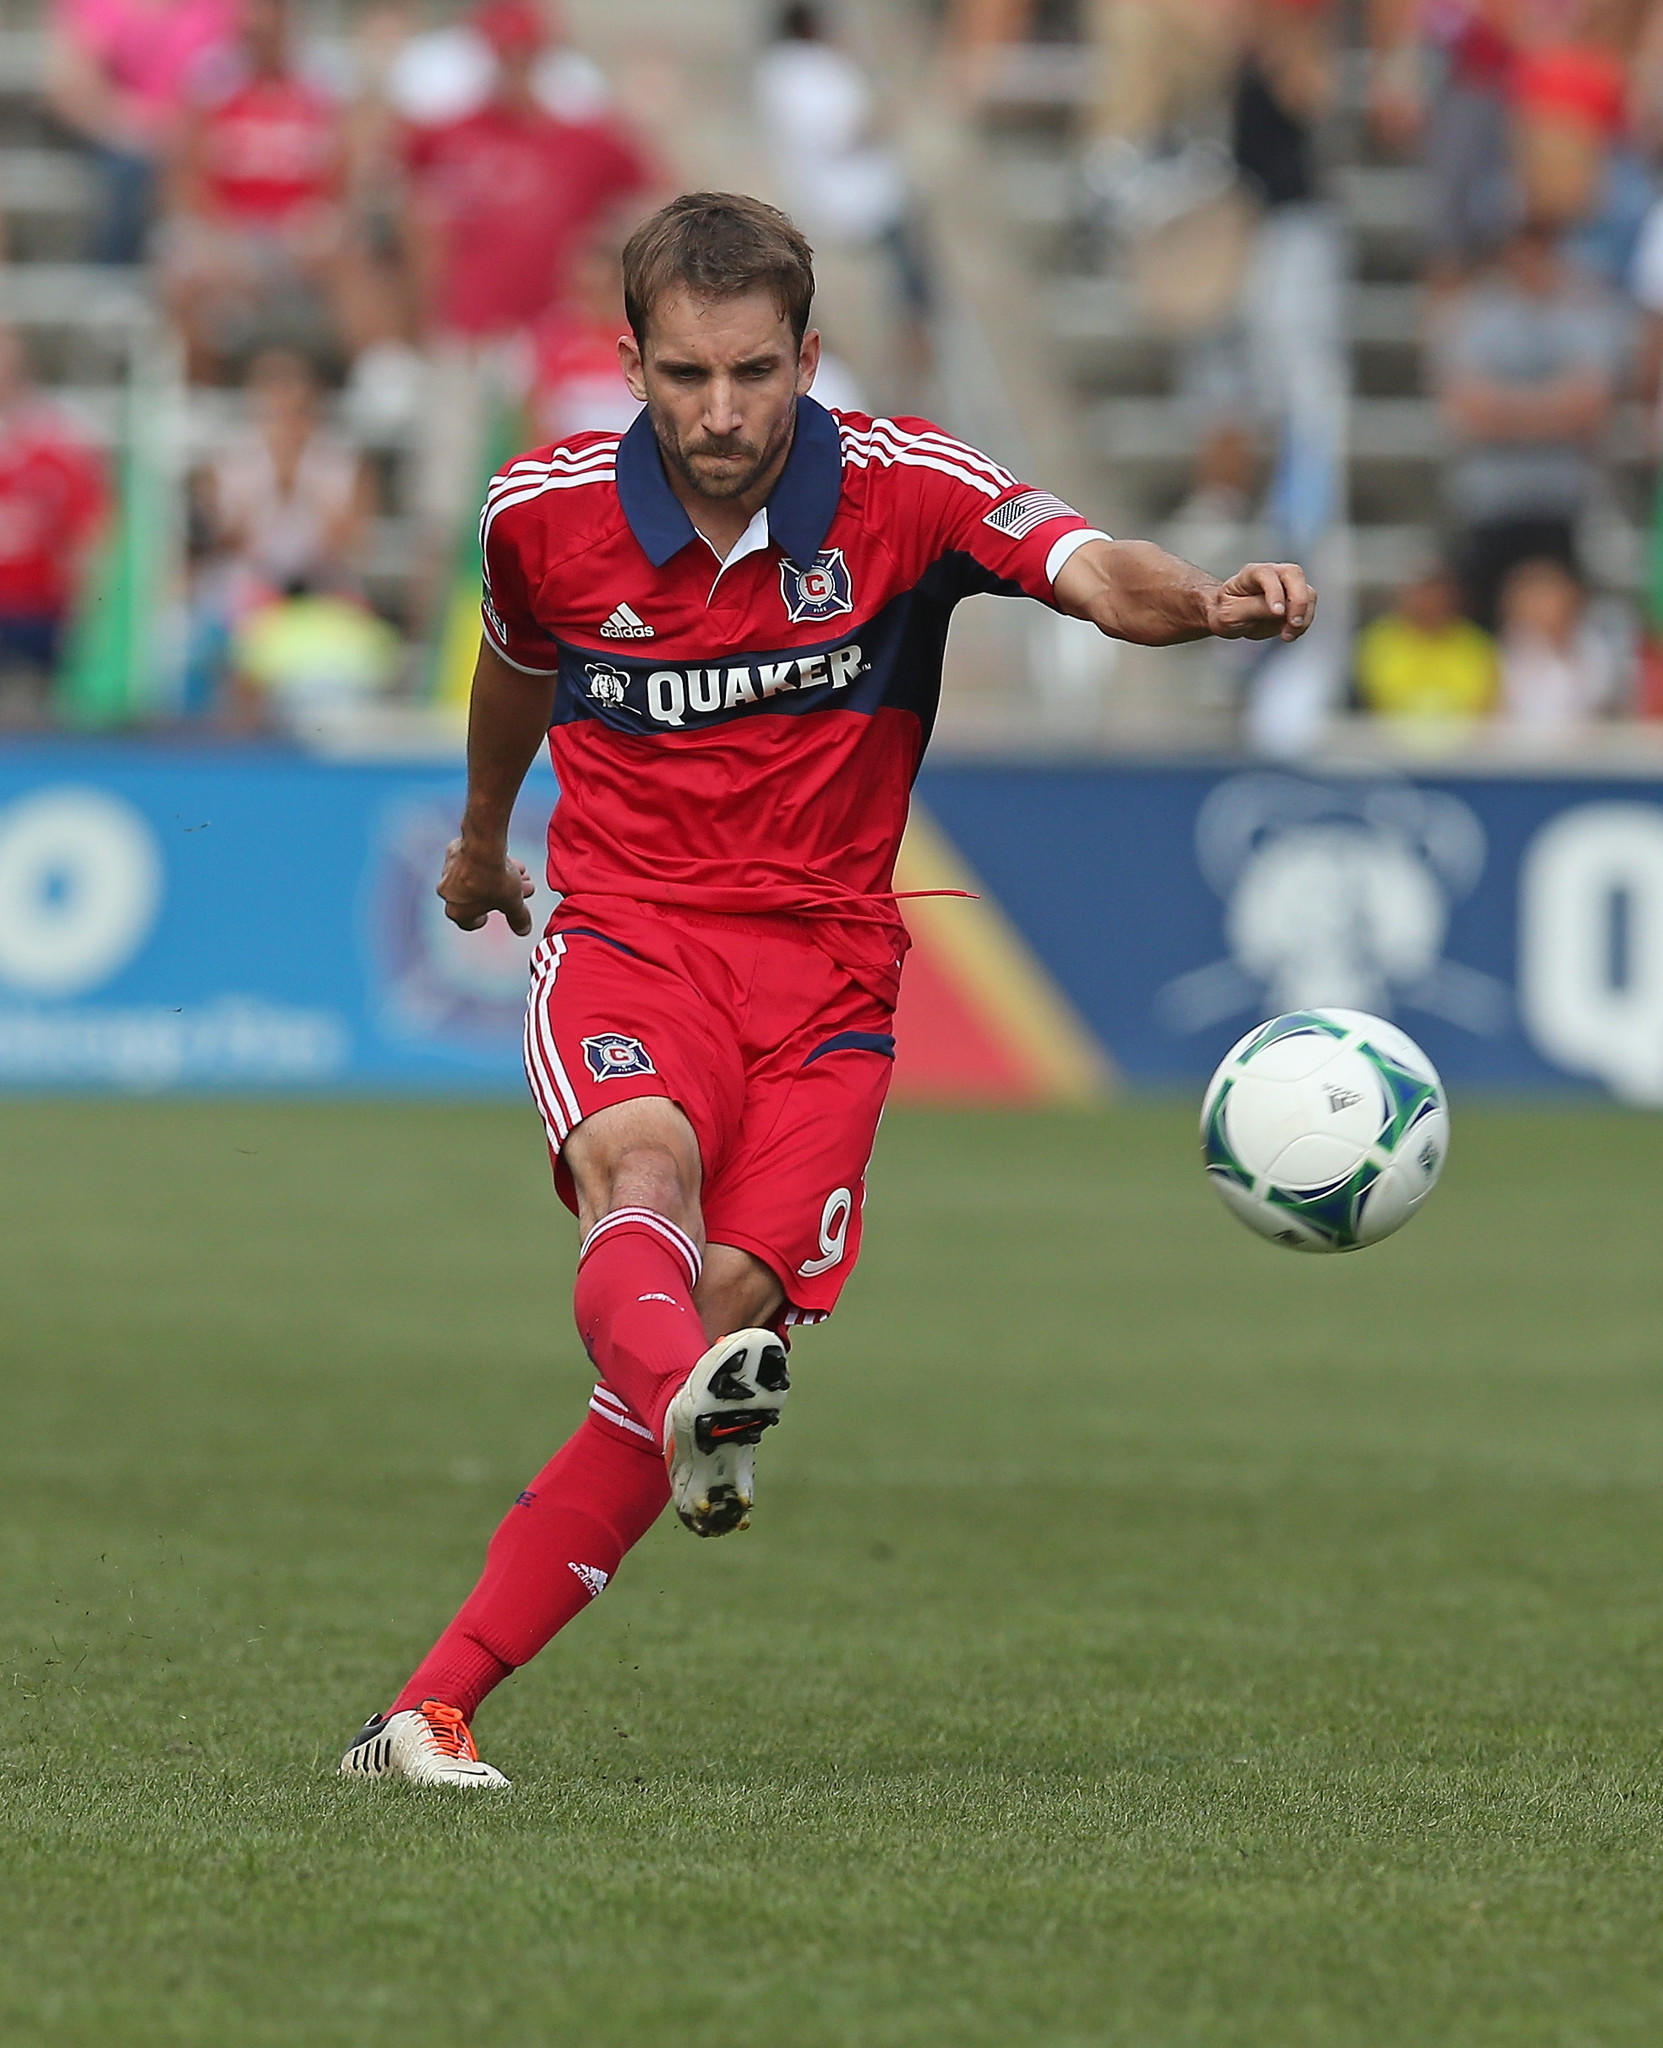 Mike Magee passes against the Dynamo during at Toyota Park.